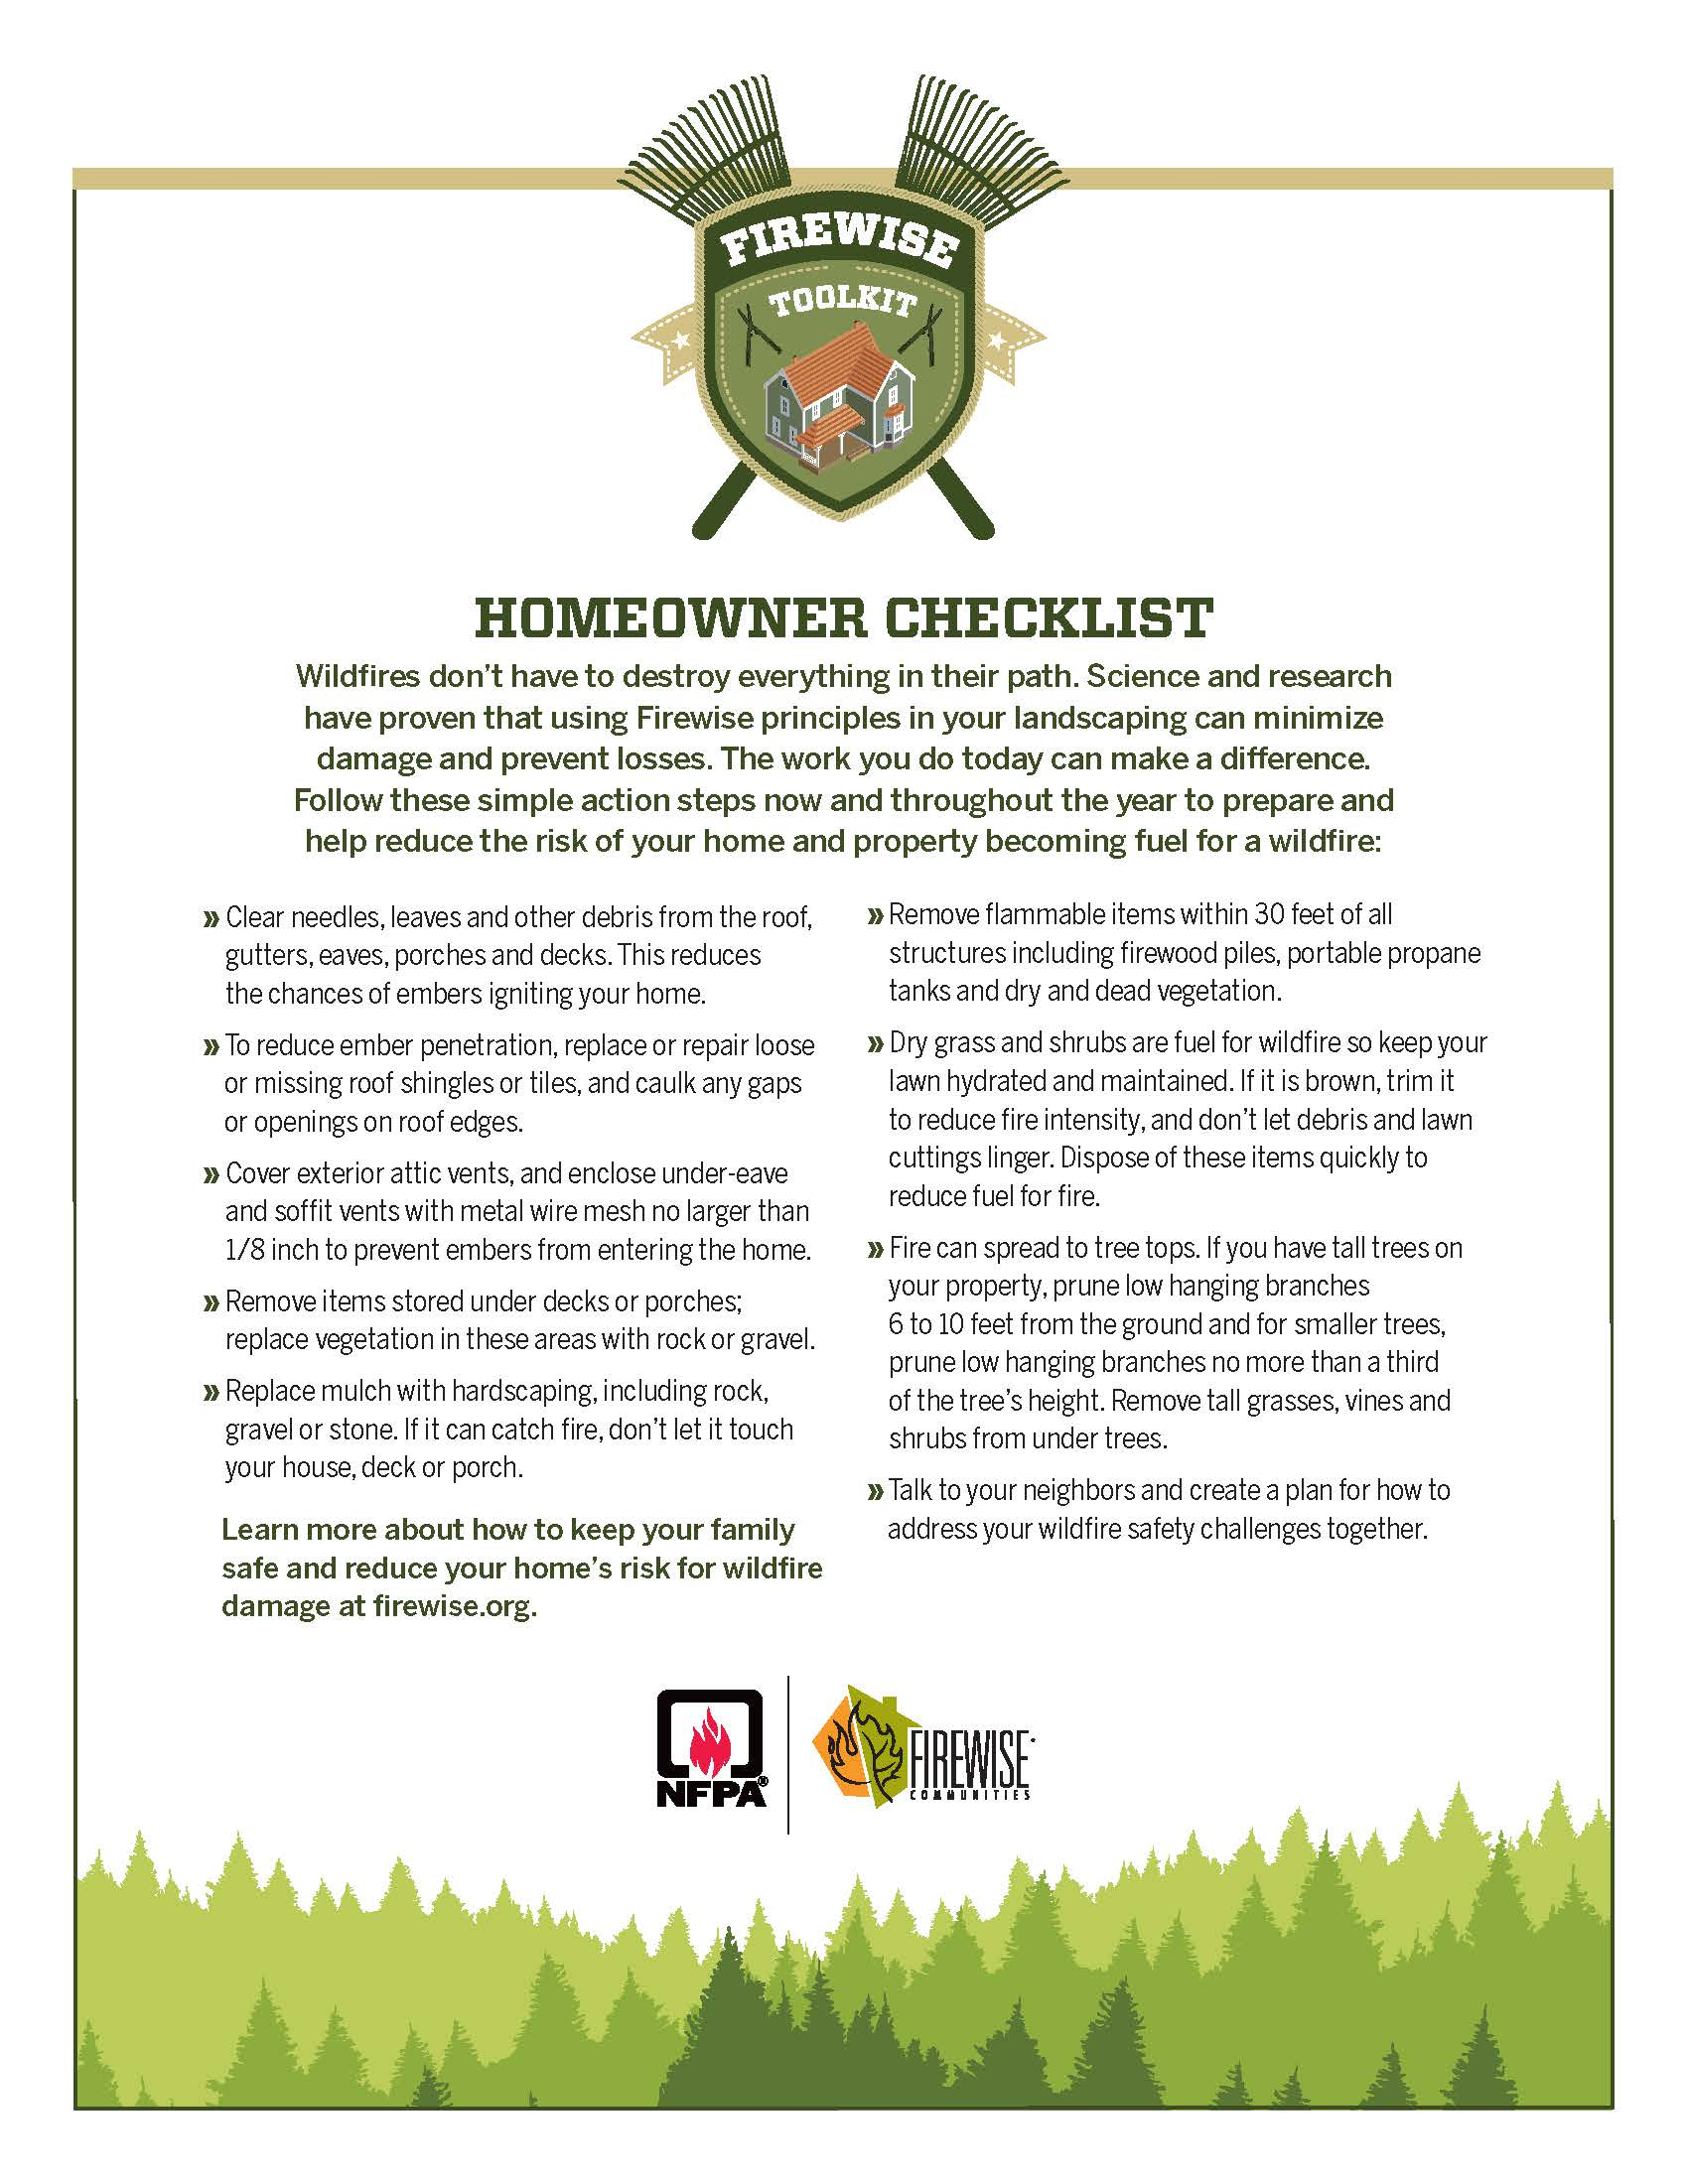 Click Here to View the Fire Safety Homeowner Checklist